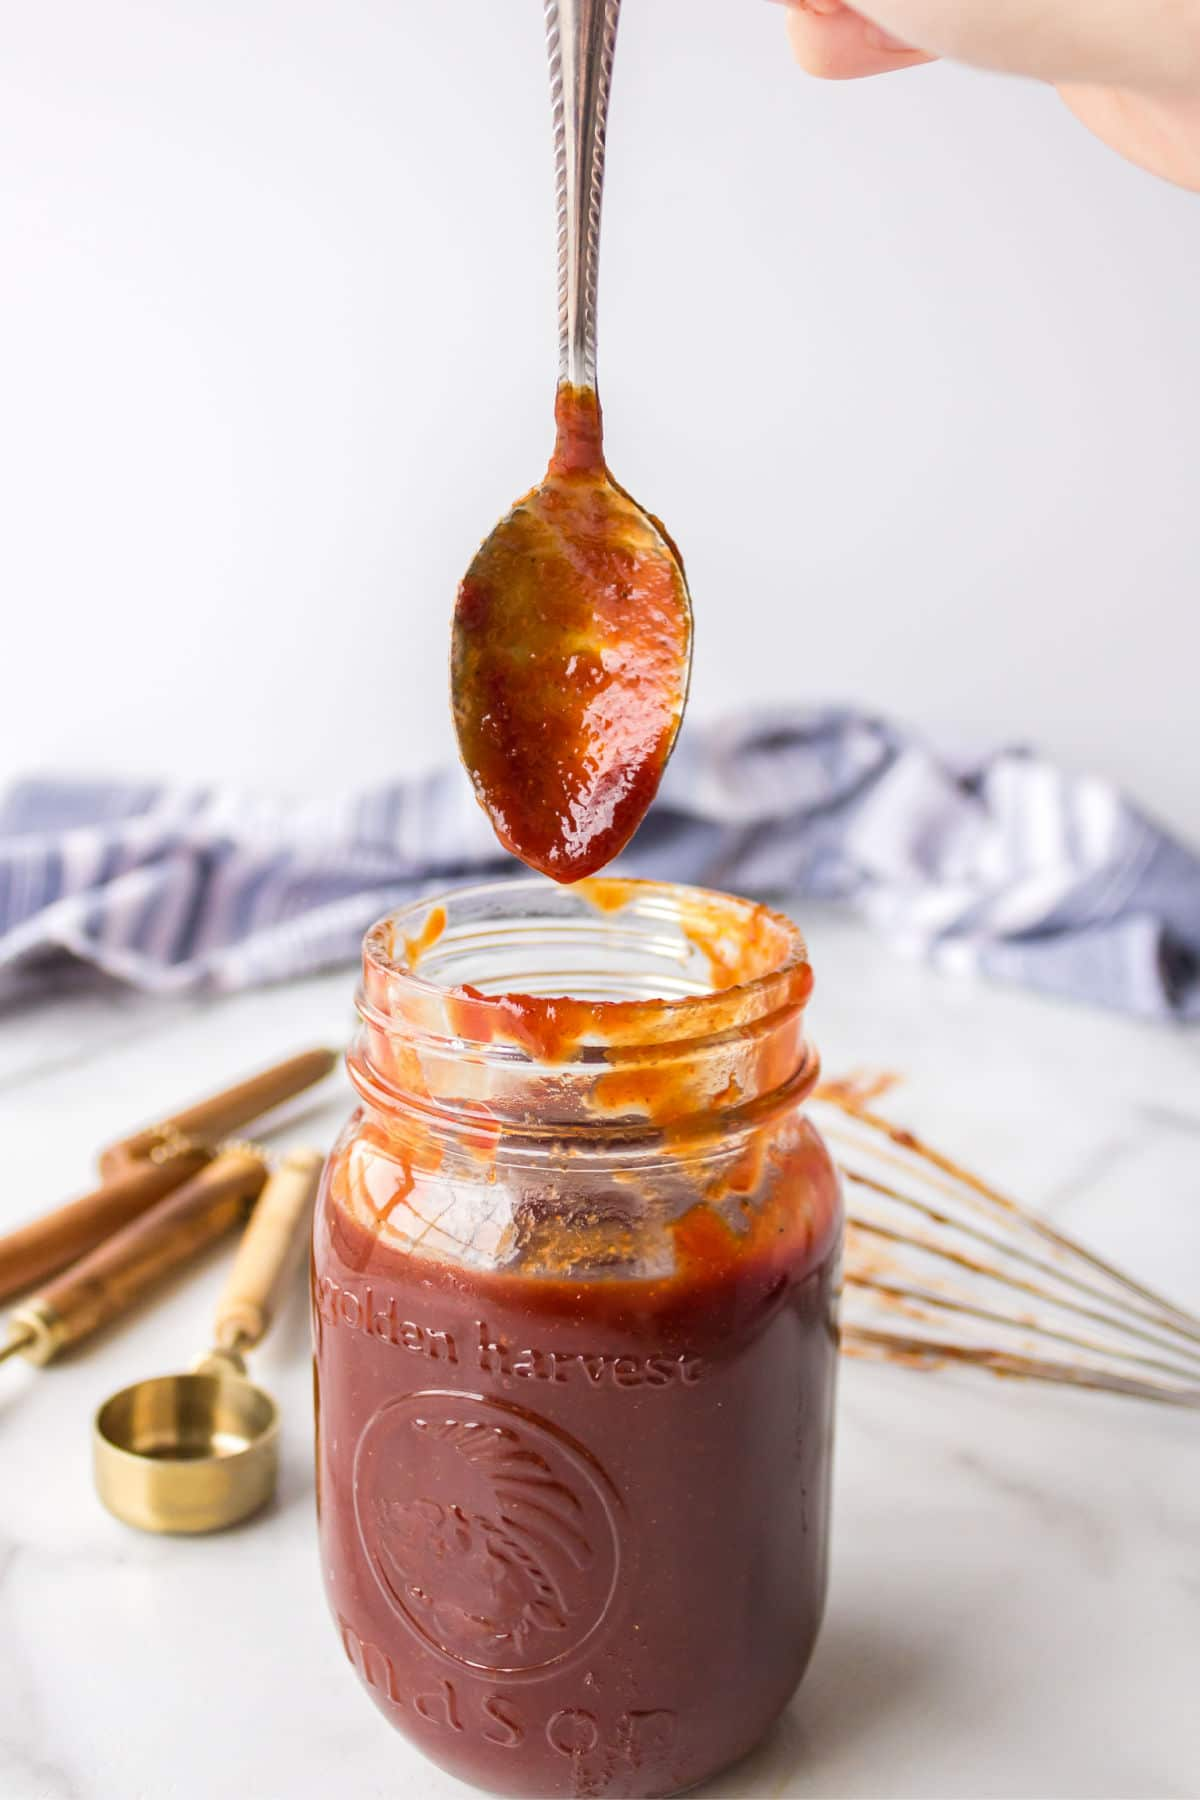 A spoon coming out of a jar of barbecue sauce.